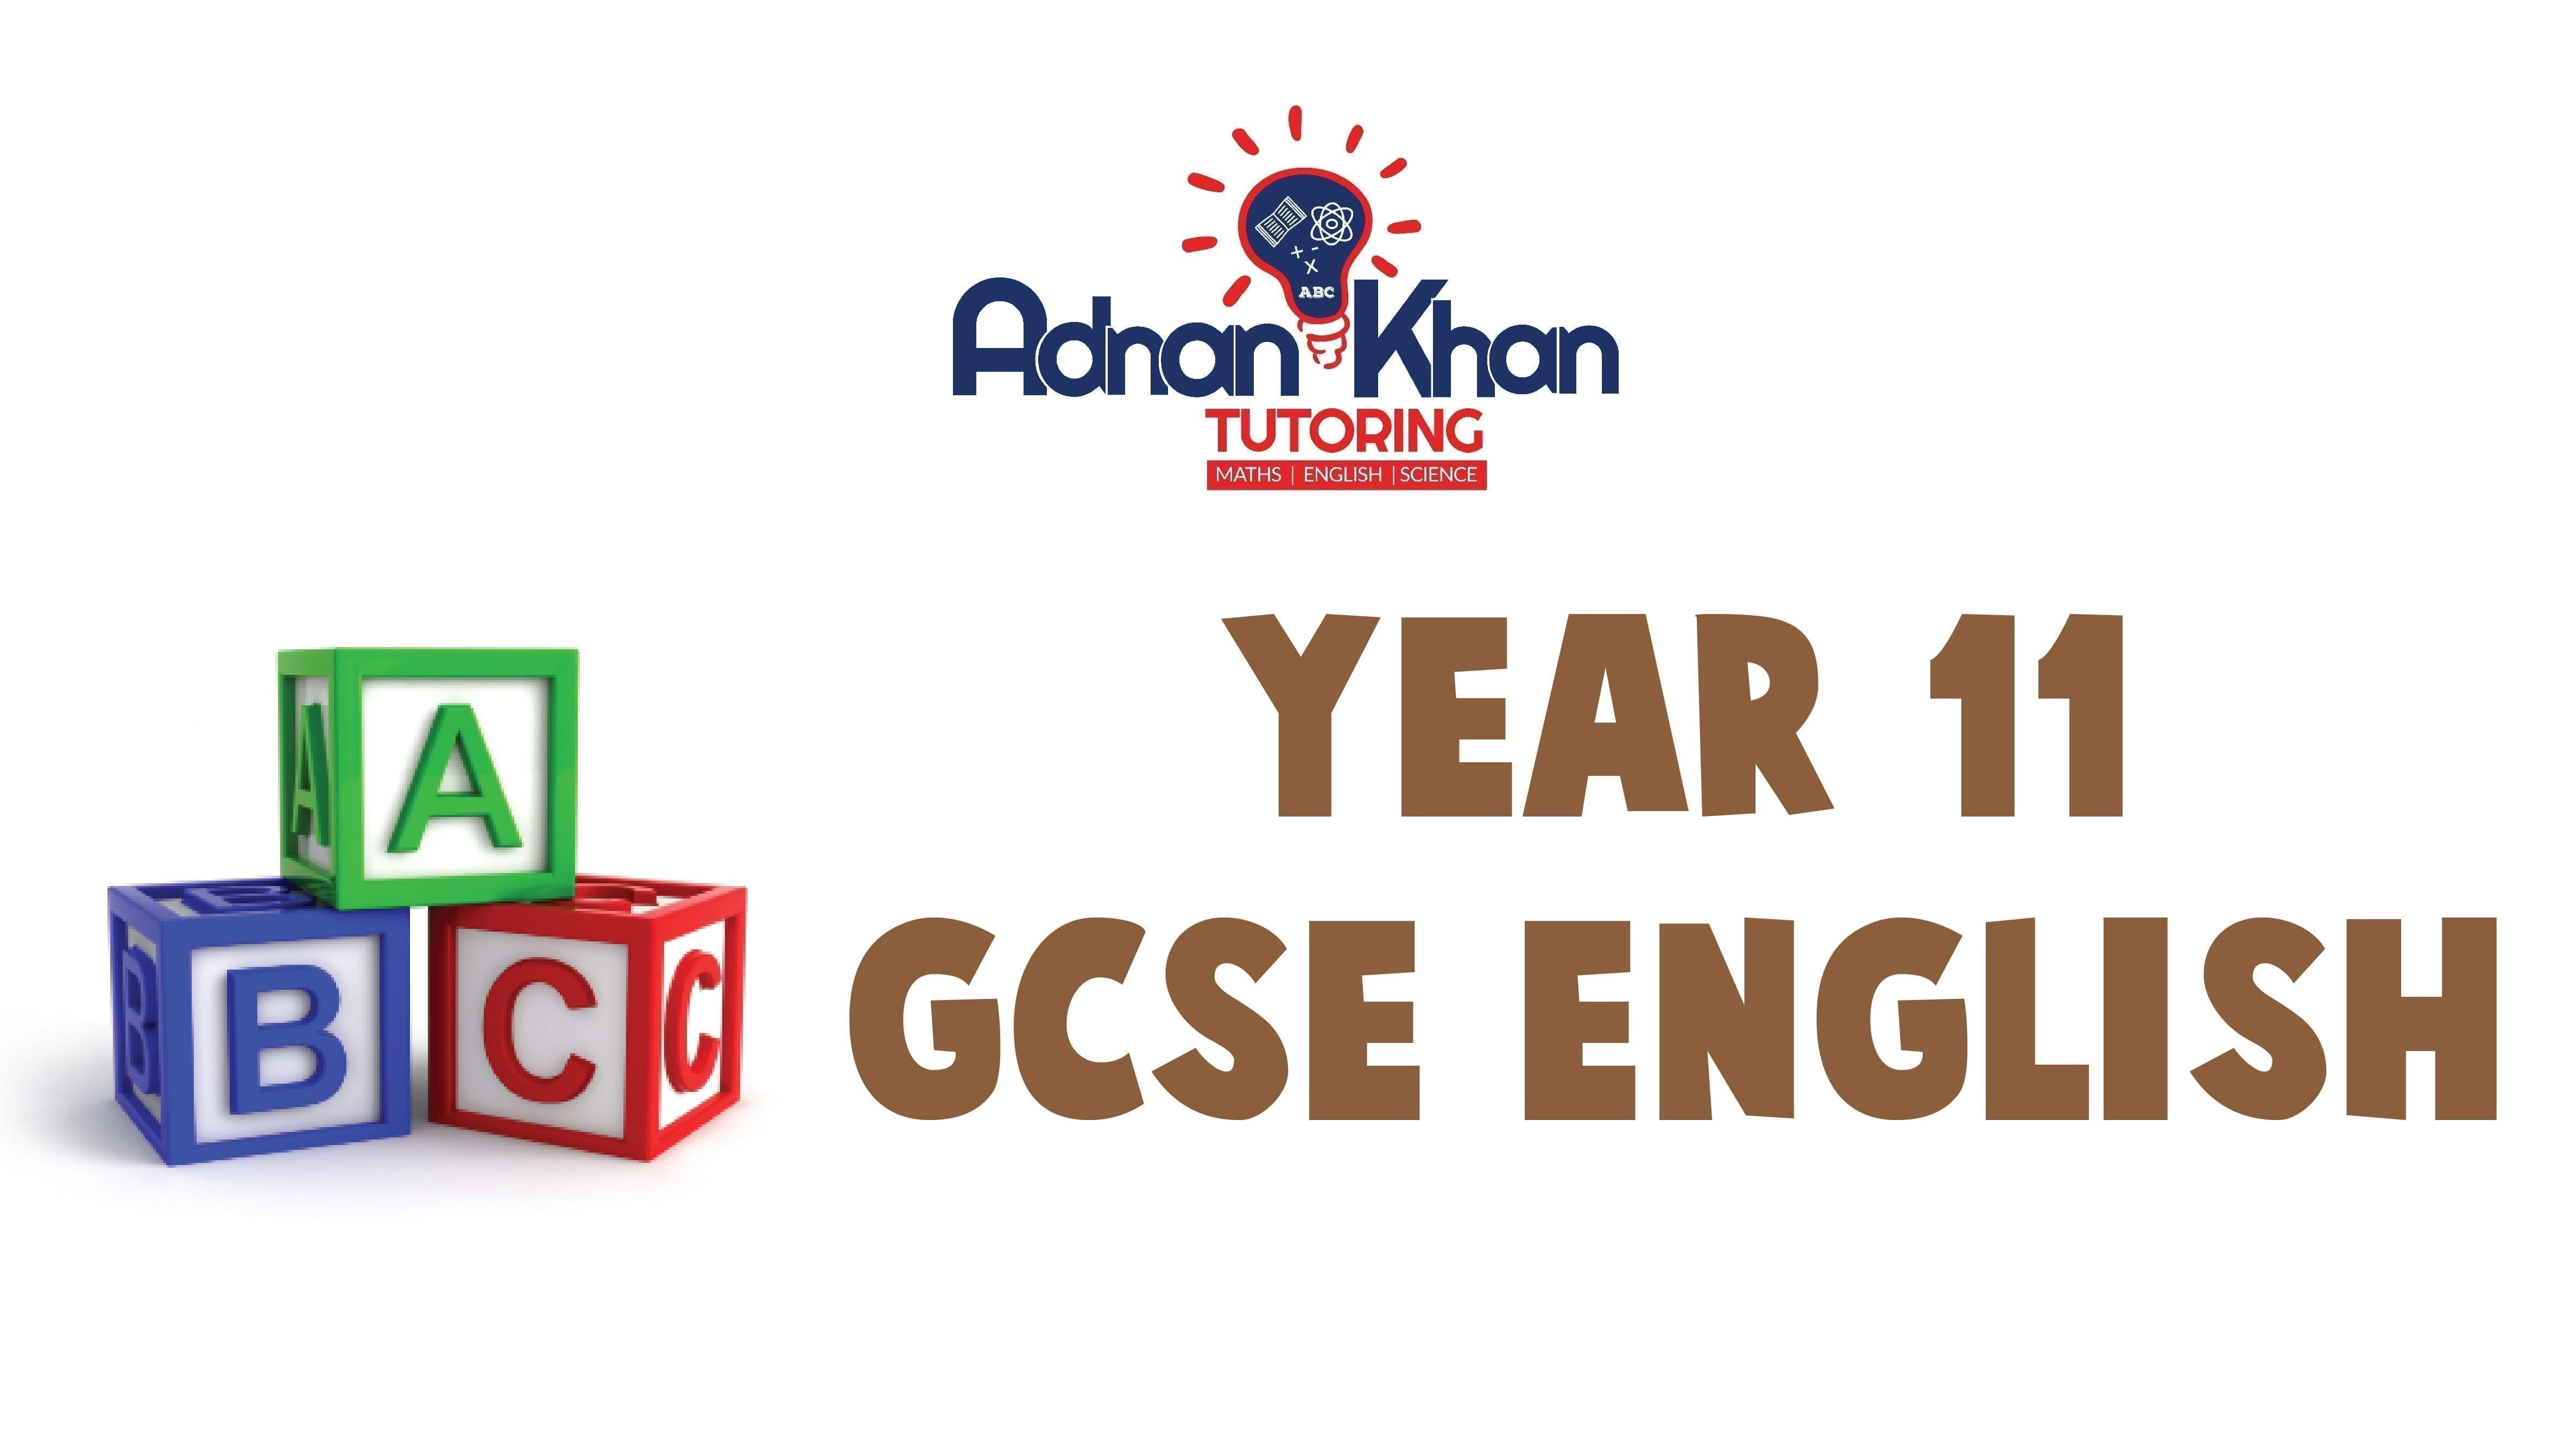 GCSE Engliah Year 11 Adnan Khan Tutoring